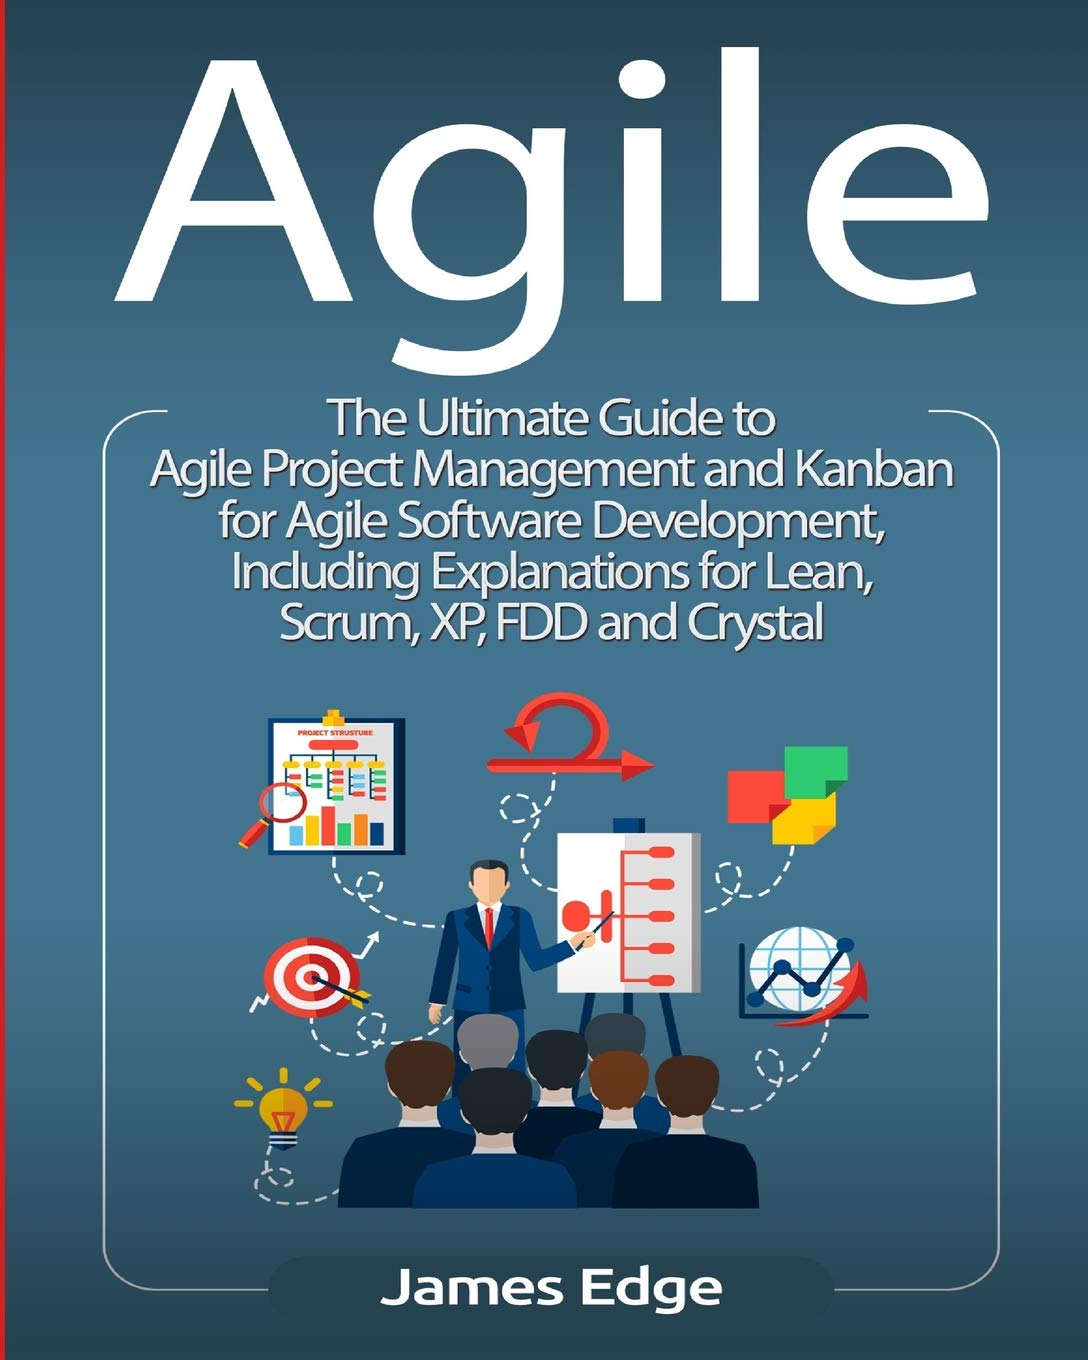 Agile The Ultimate Guide To Agile Project Management And Kanban For Agile Software Development Including Explanations For Lean Scrum Xp Fdd And Crystal Edge James 9781727480979 Amazon Com Books